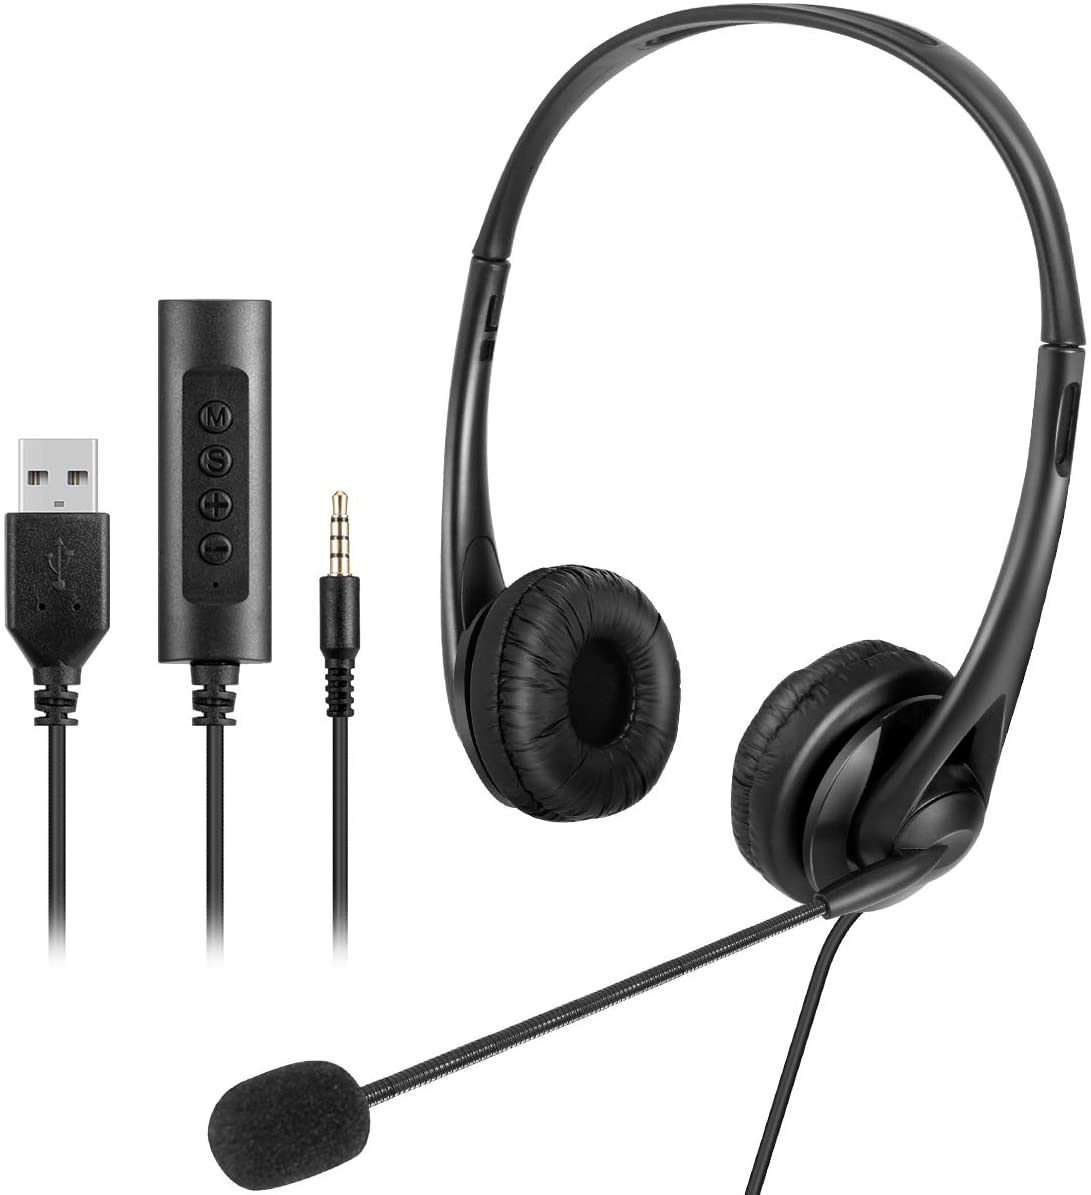 HelloCreate Wired Headset with Mic, 3.5mm/USB Plug Over-Ear Headphone with Mic Volume Control for PC Mobile Phone